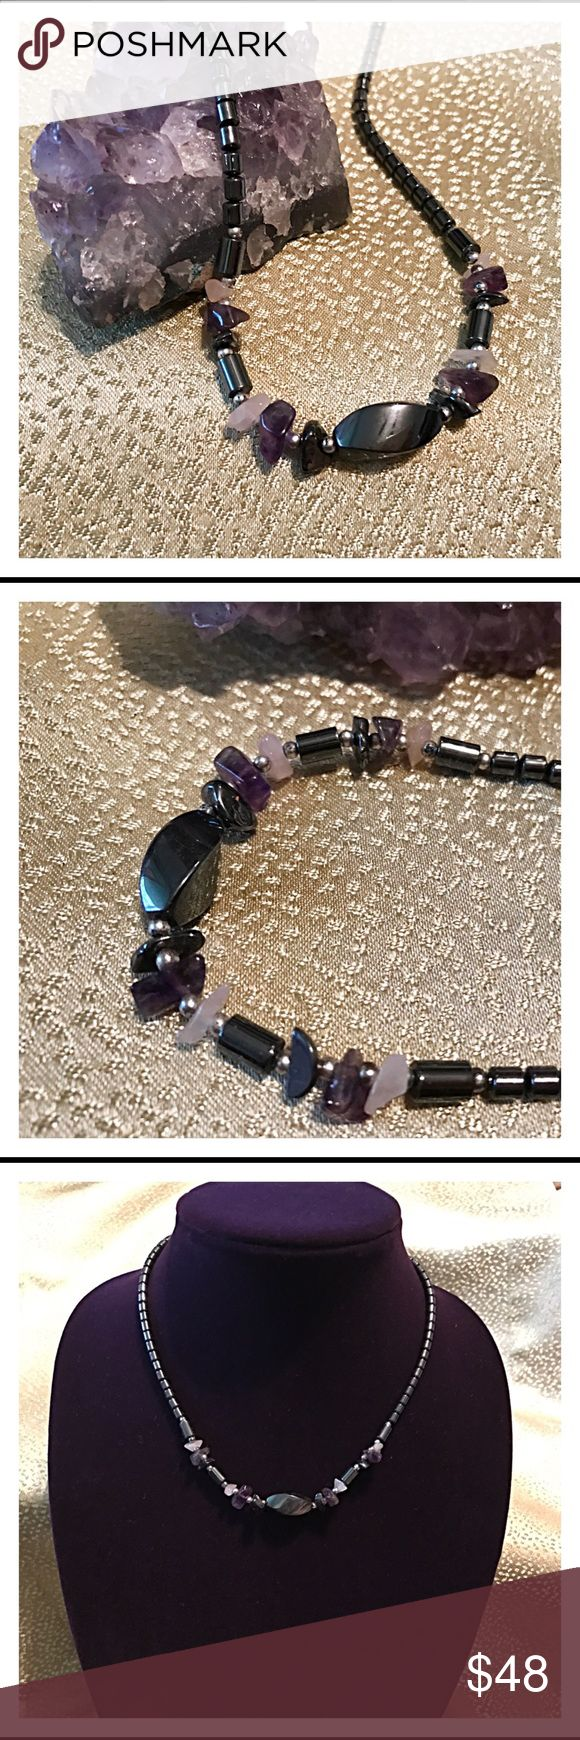 Amethyst & Hematite Two Fantastic stones! Amethyst helps inner peace, calmness & reduces stress.  Hematite helps eliminate electromagnetic pollution from your computer & electronic devices.  I keep both at my Computer. This is a Necklace, so you can wear it while working & leave it there for the next day.  Be sure to cleanse the stones weekly. Just leave it in direct sunlight.    Bundle 3 or more 10% discount  Thanks!! Tazzzygurl (Amethyst Rock is not for sale) Jewelry Necklaces